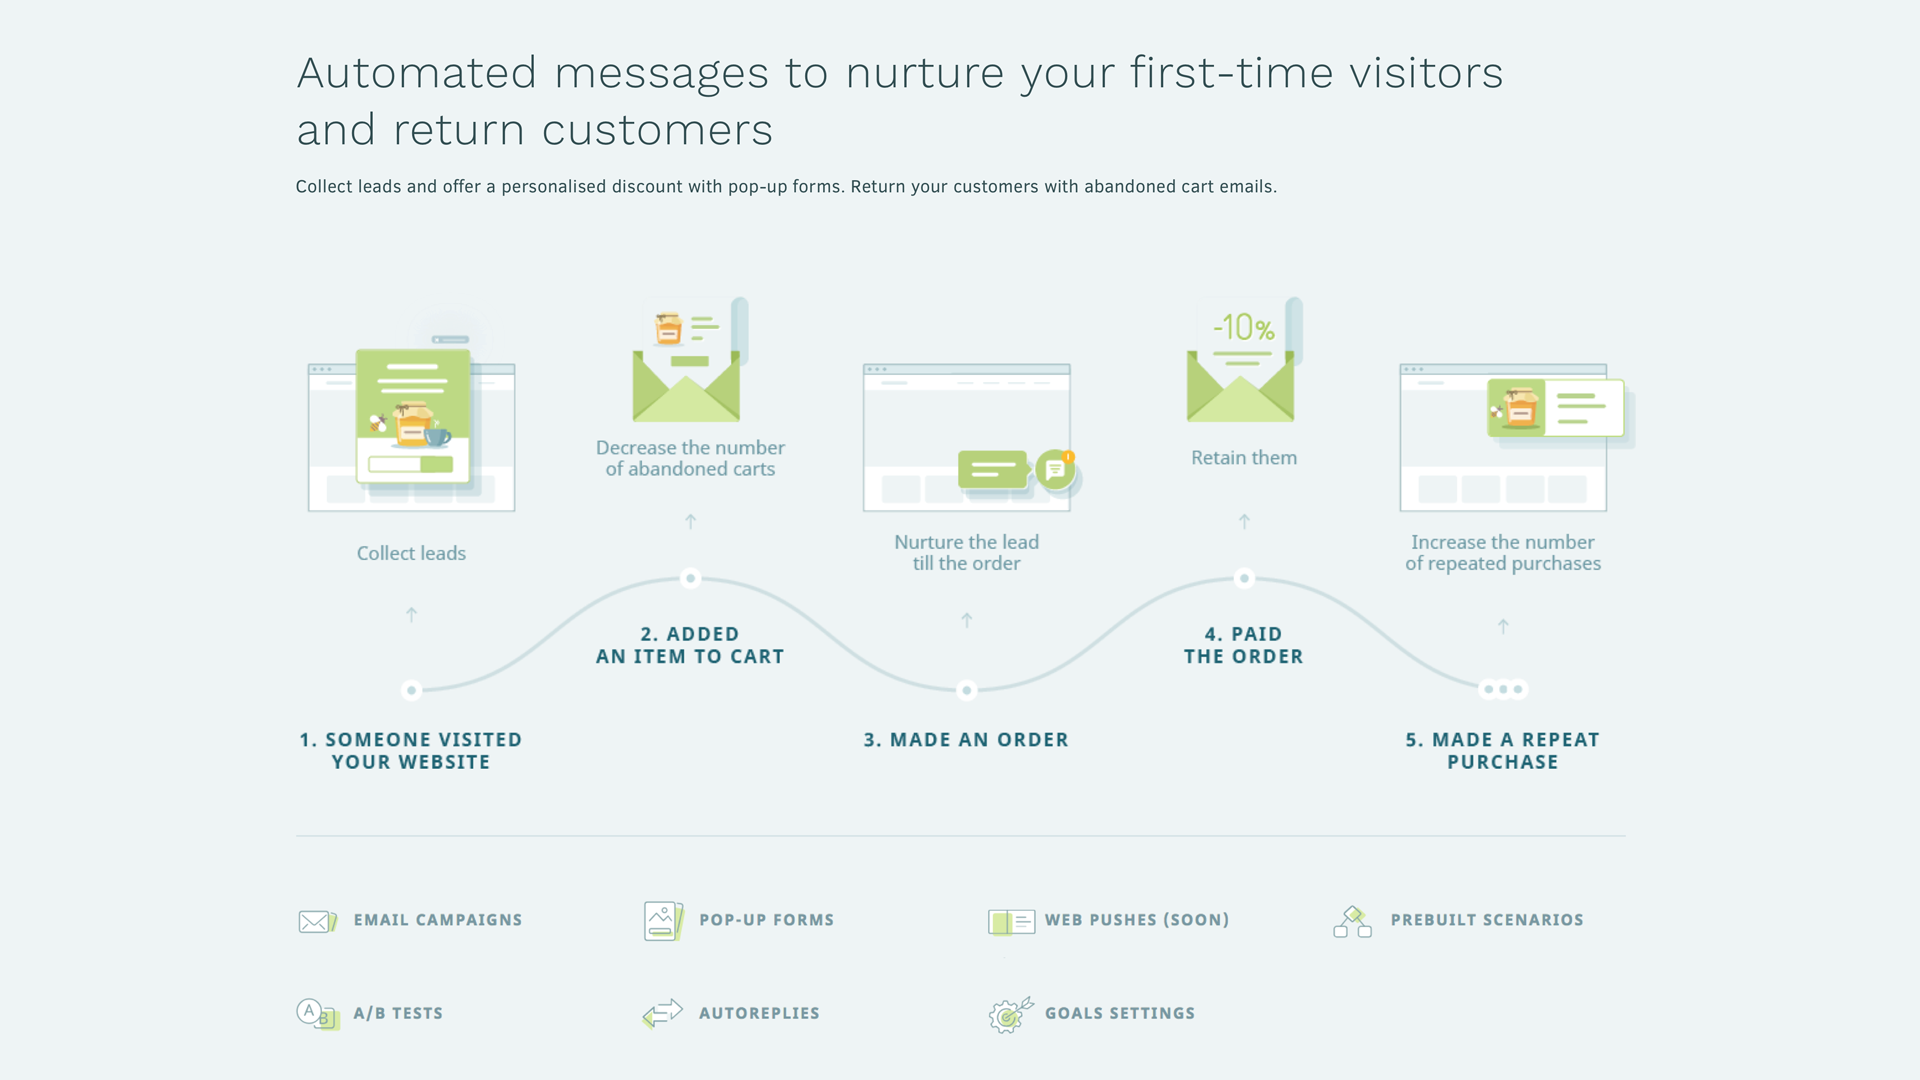 Keep track the visitors on every step of the funnel and nurture and retain them in real time